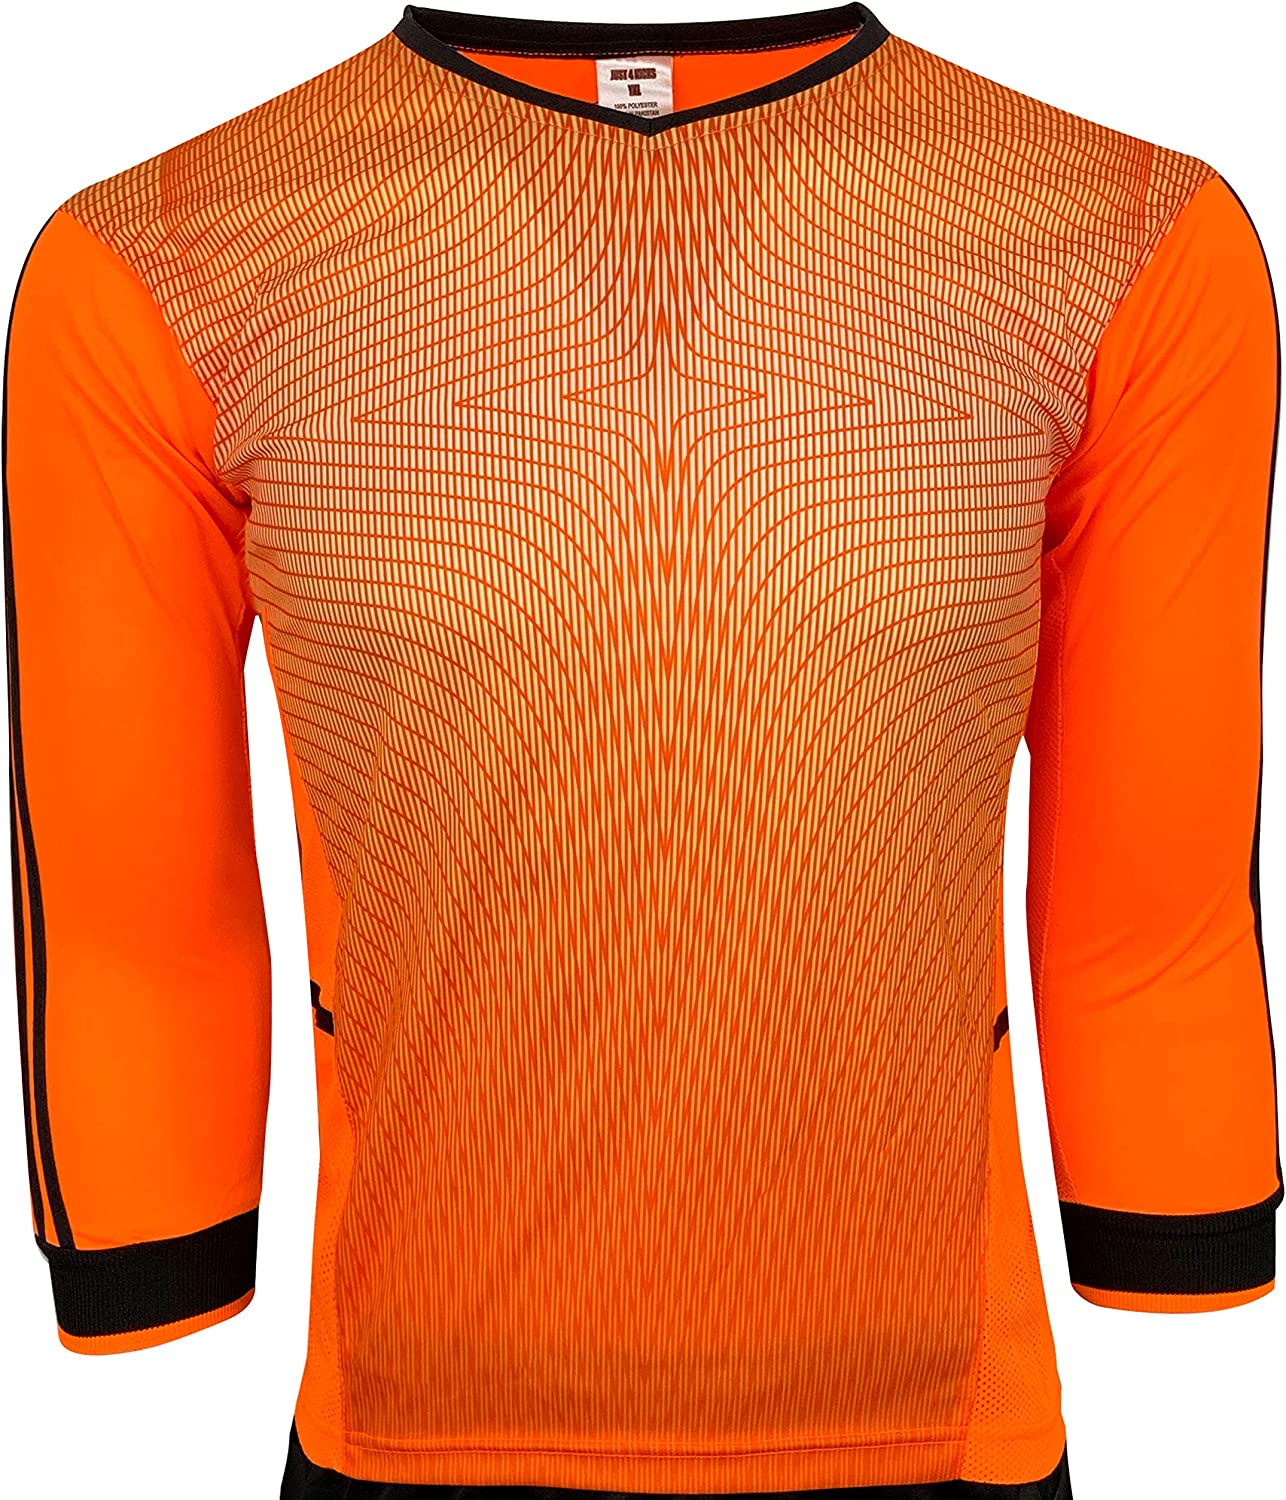 Just 4 Kicks Goalkeeper Jersey, (Orange, Neon and Blue) Padded Elbow Goalie Shirt for Kids and Adults: Clothing